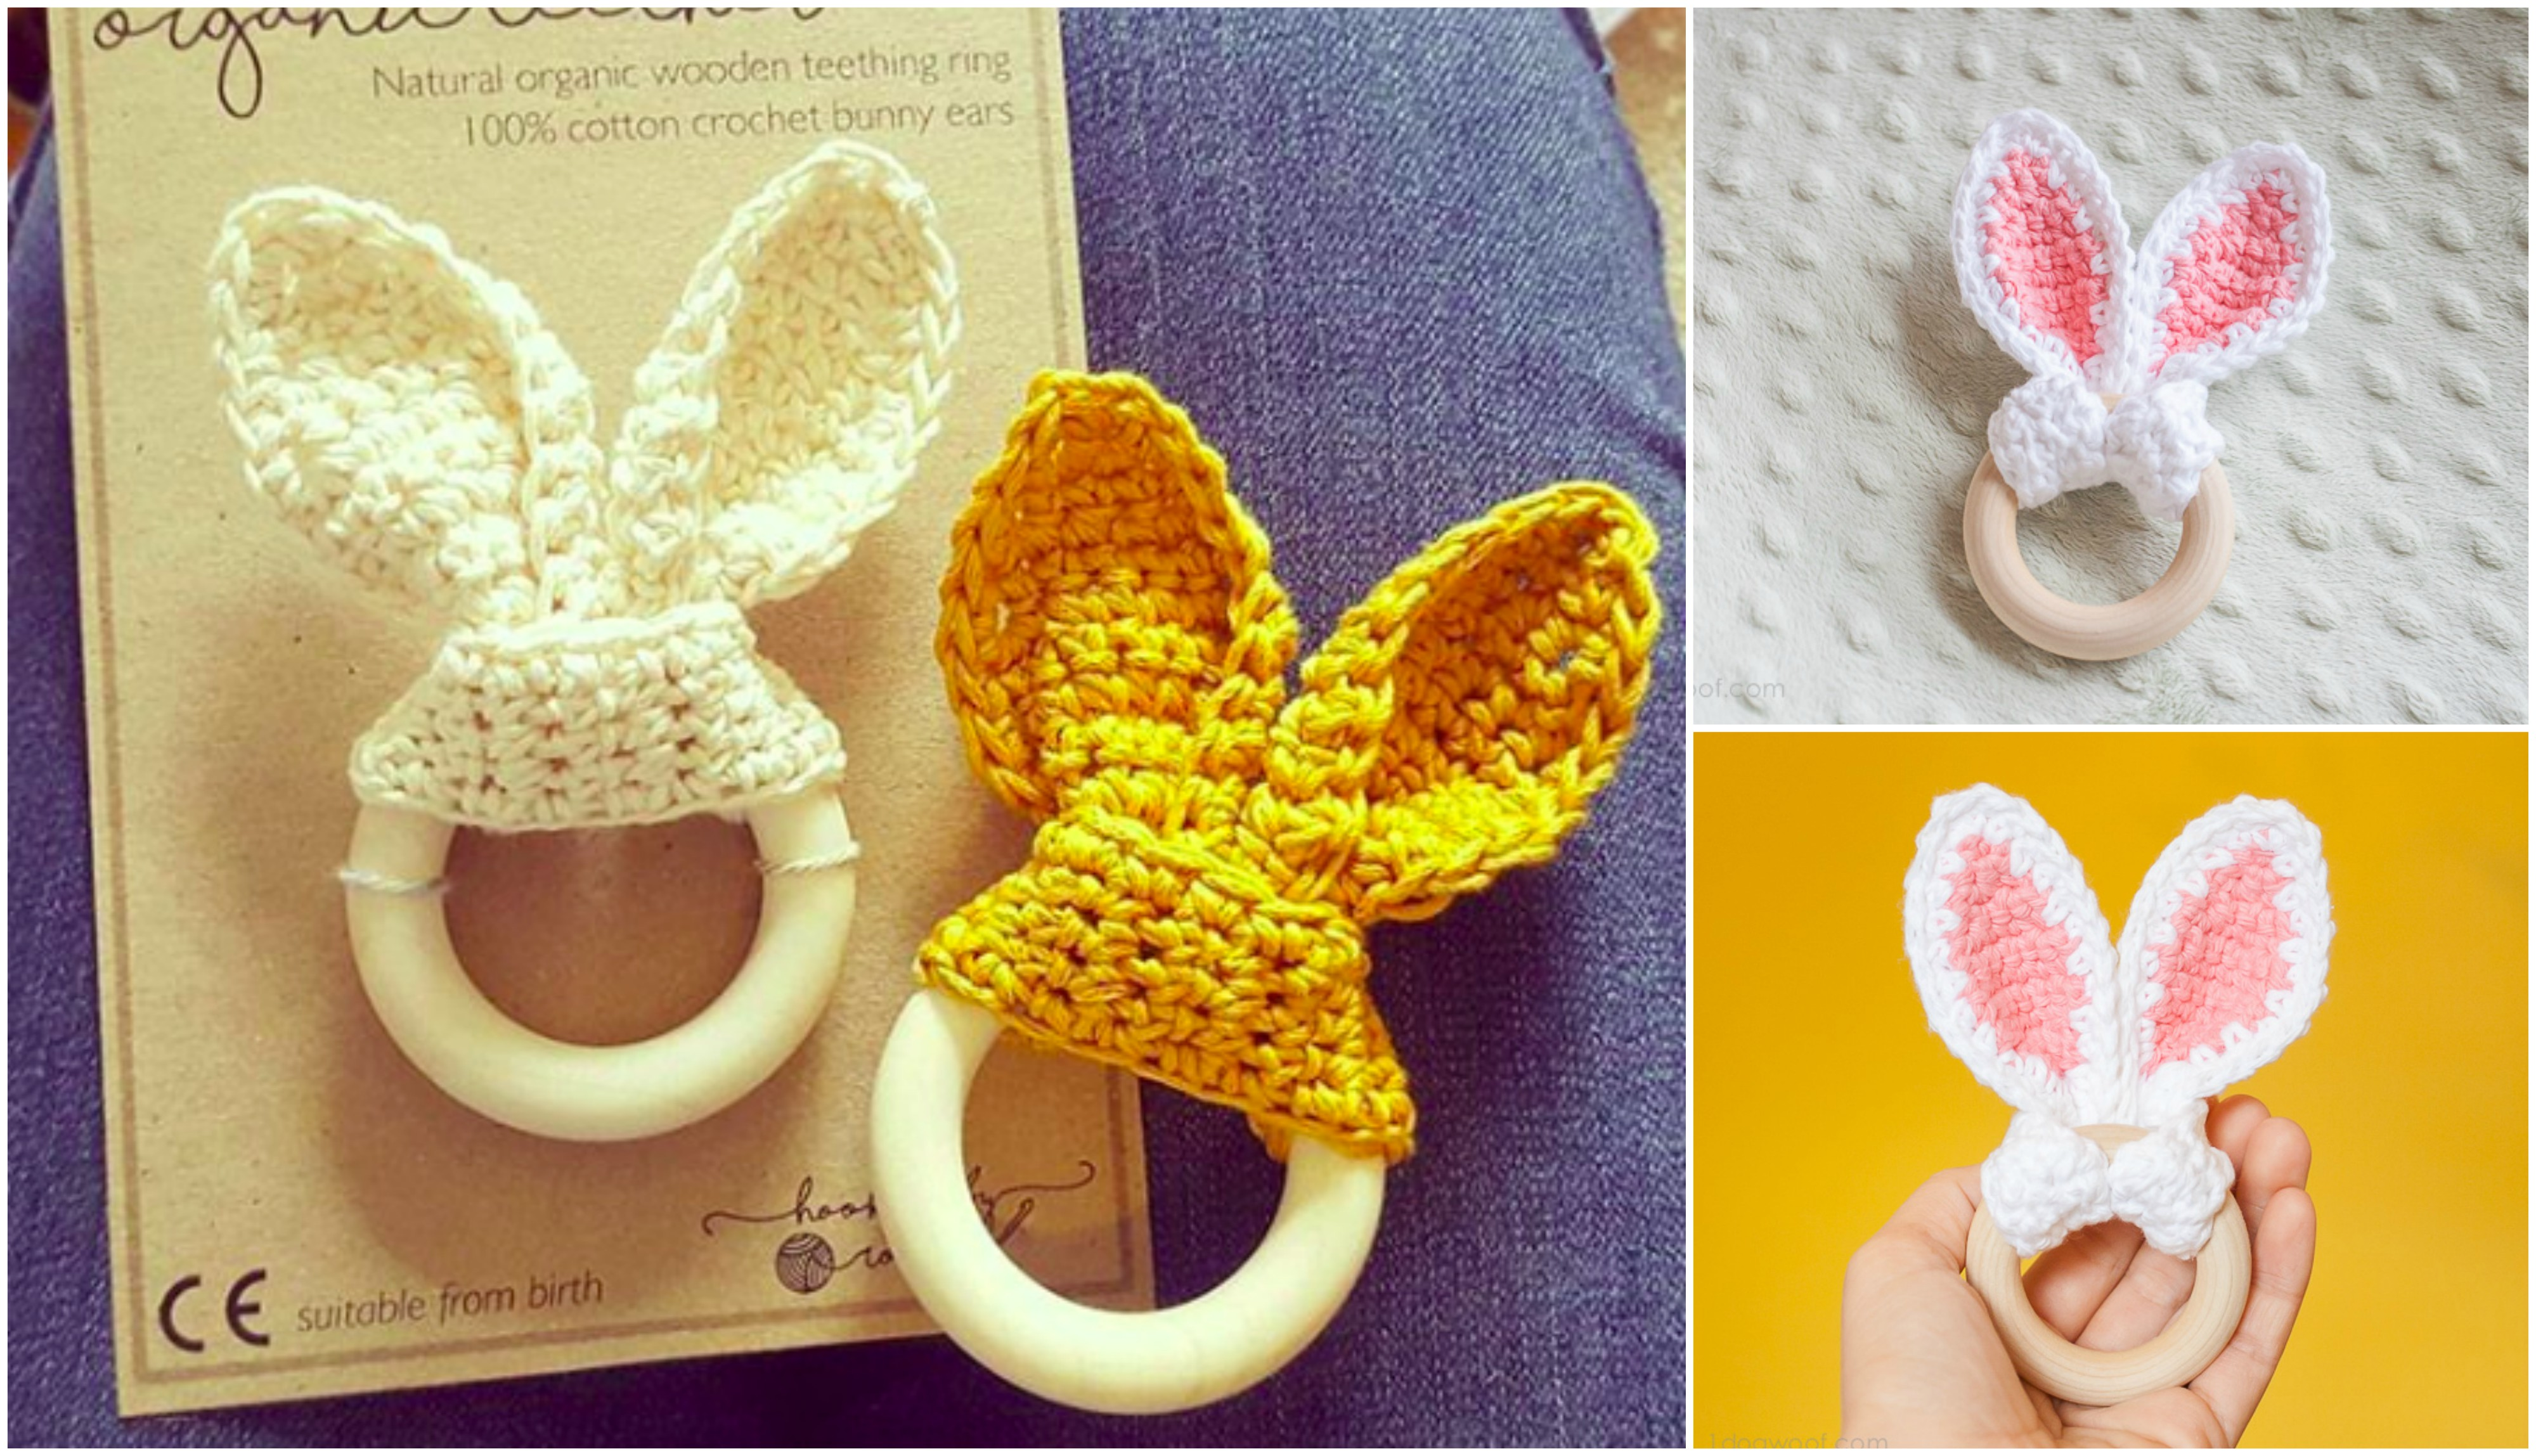 Bunny Ear Teething Ring | Crochet Teether | Simple how to tutorial ... | 2297x4000